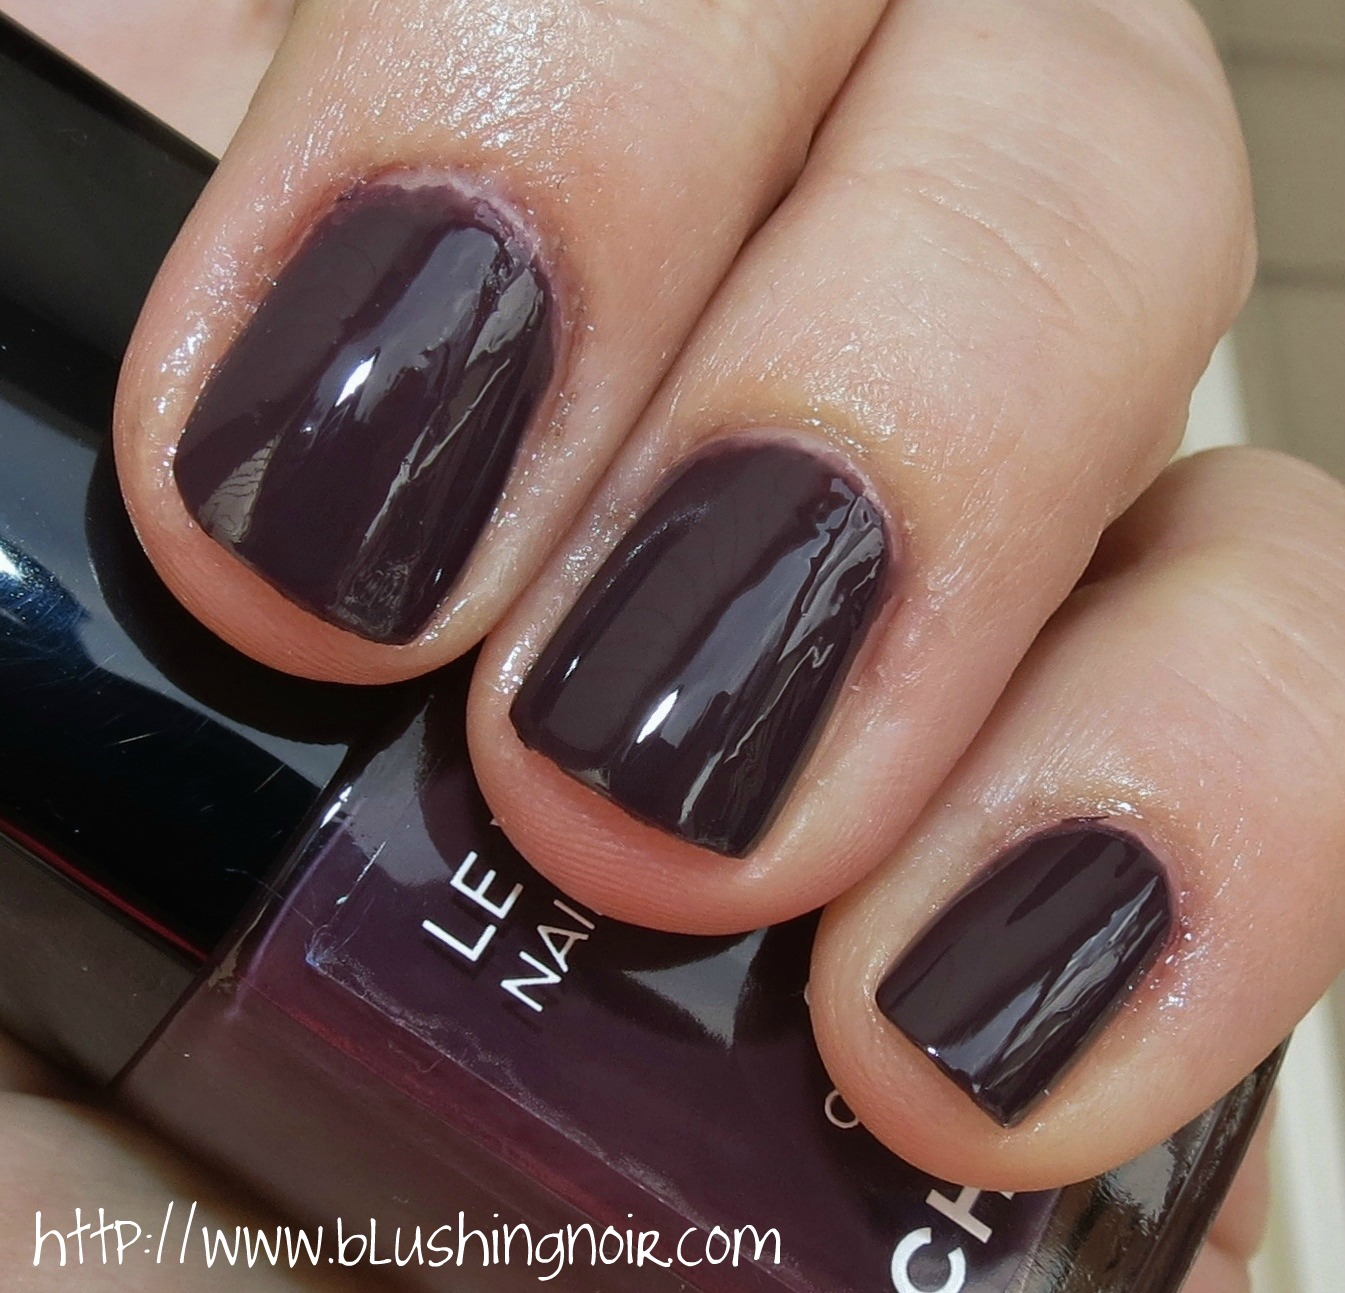 Chanel 603 CHARIVARI Le Vernis Nail Colour Swatches & Review - Notes ...